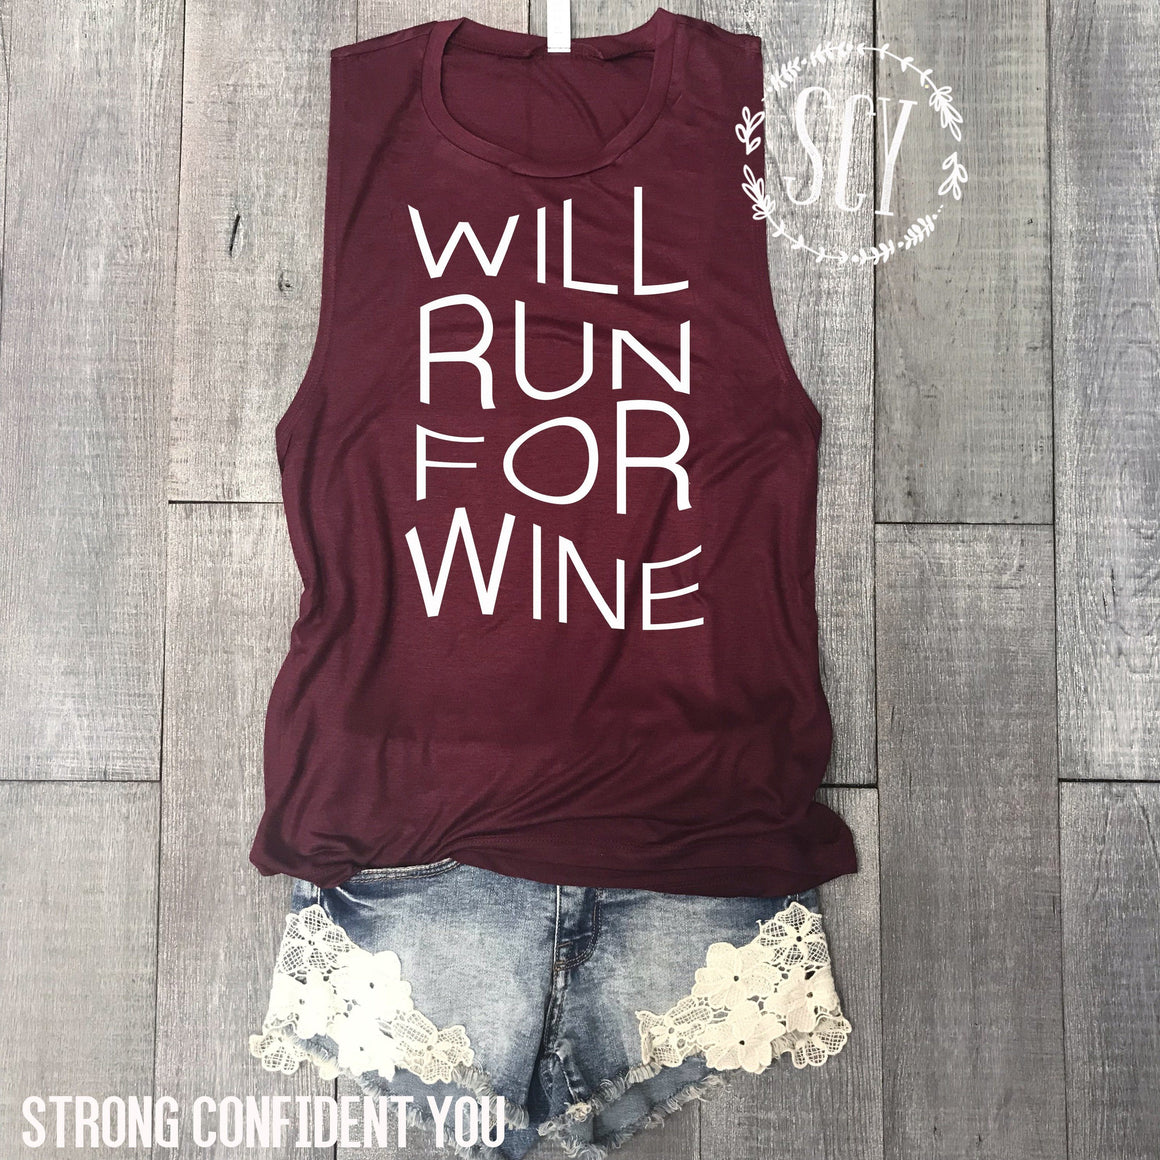 Will Run For Wine - Strong Confident You